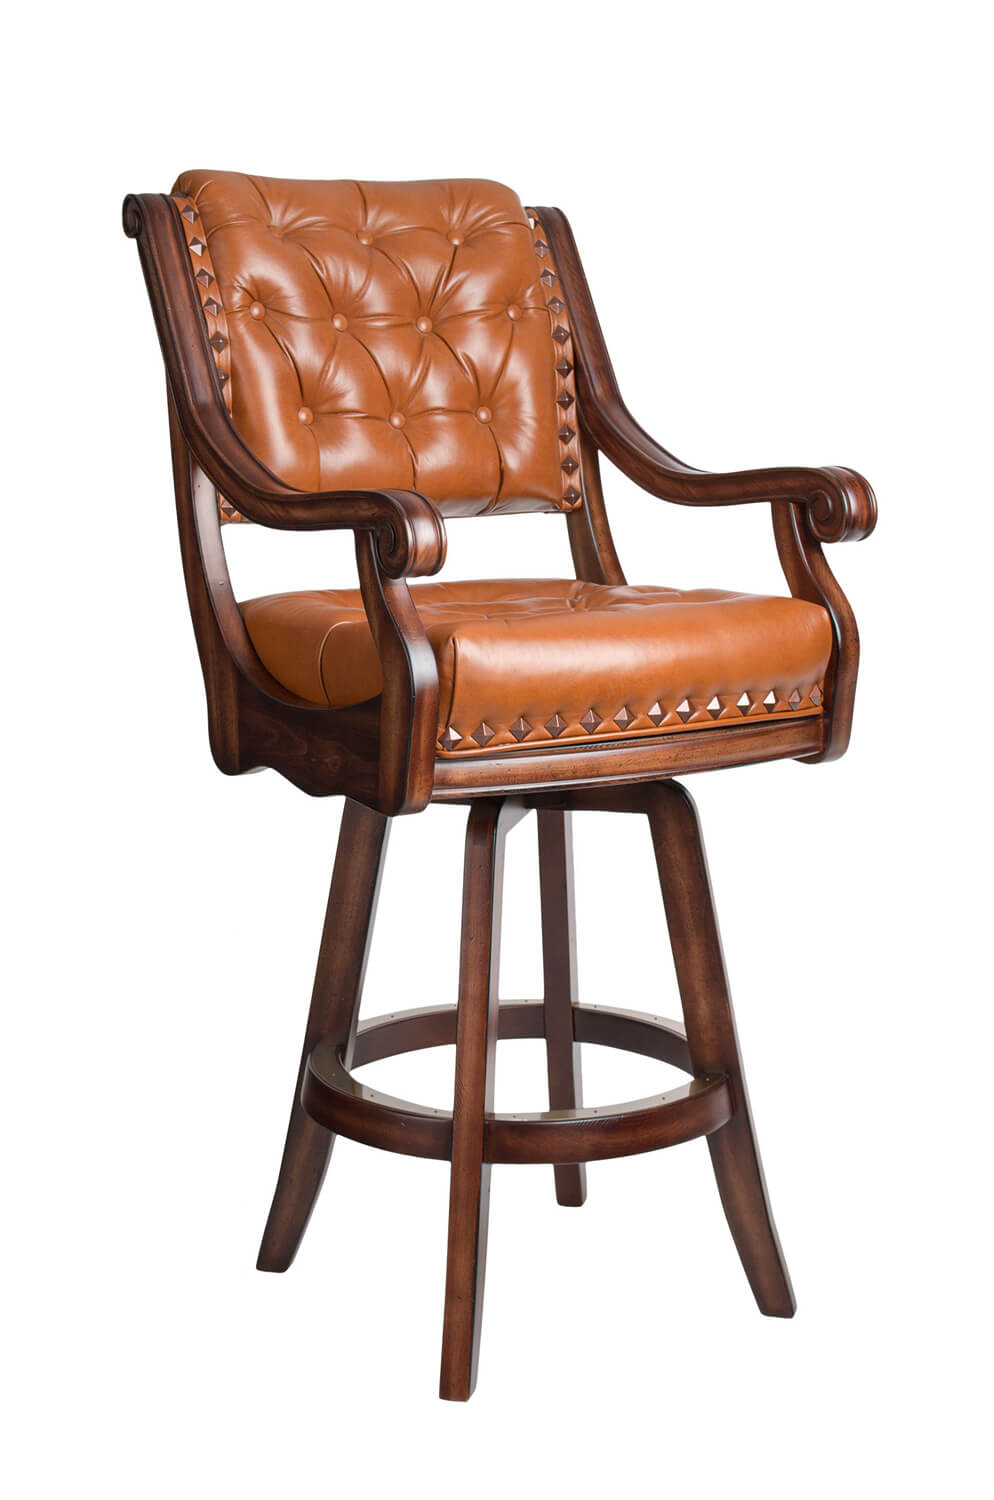 Darafeev's Ponce De Leon Wooden Swivel Stool with Arms